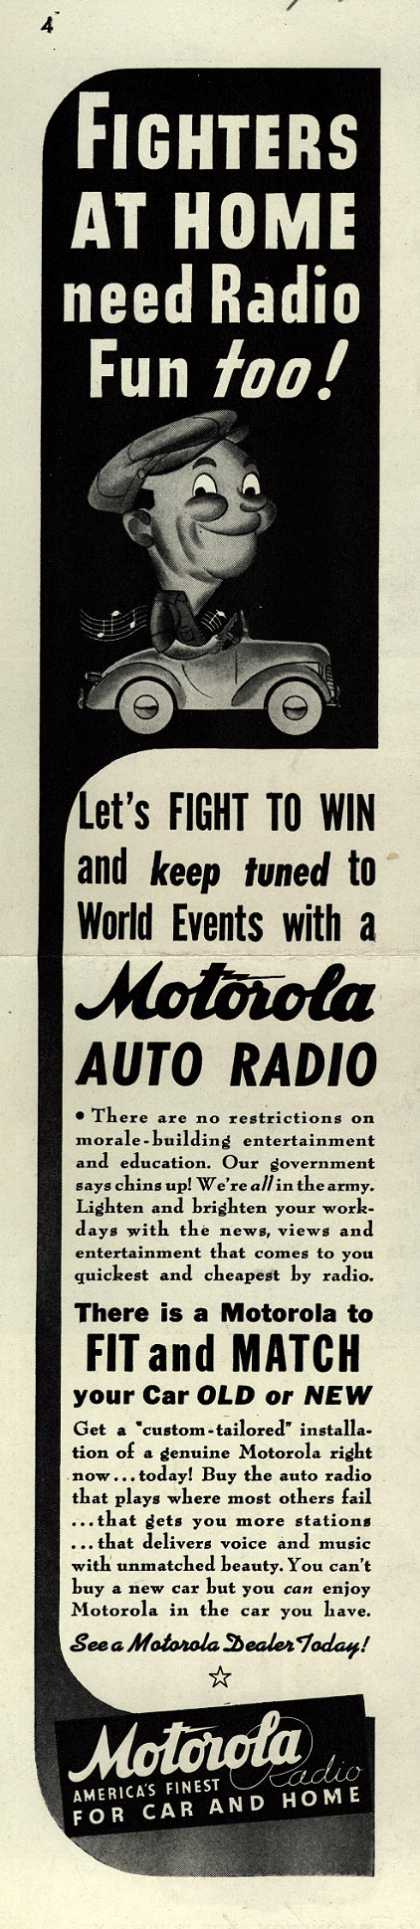 Galvin Manufacturing Corporation's Auto Radio – Fighters At Home Need Radio Fun Too (1942)